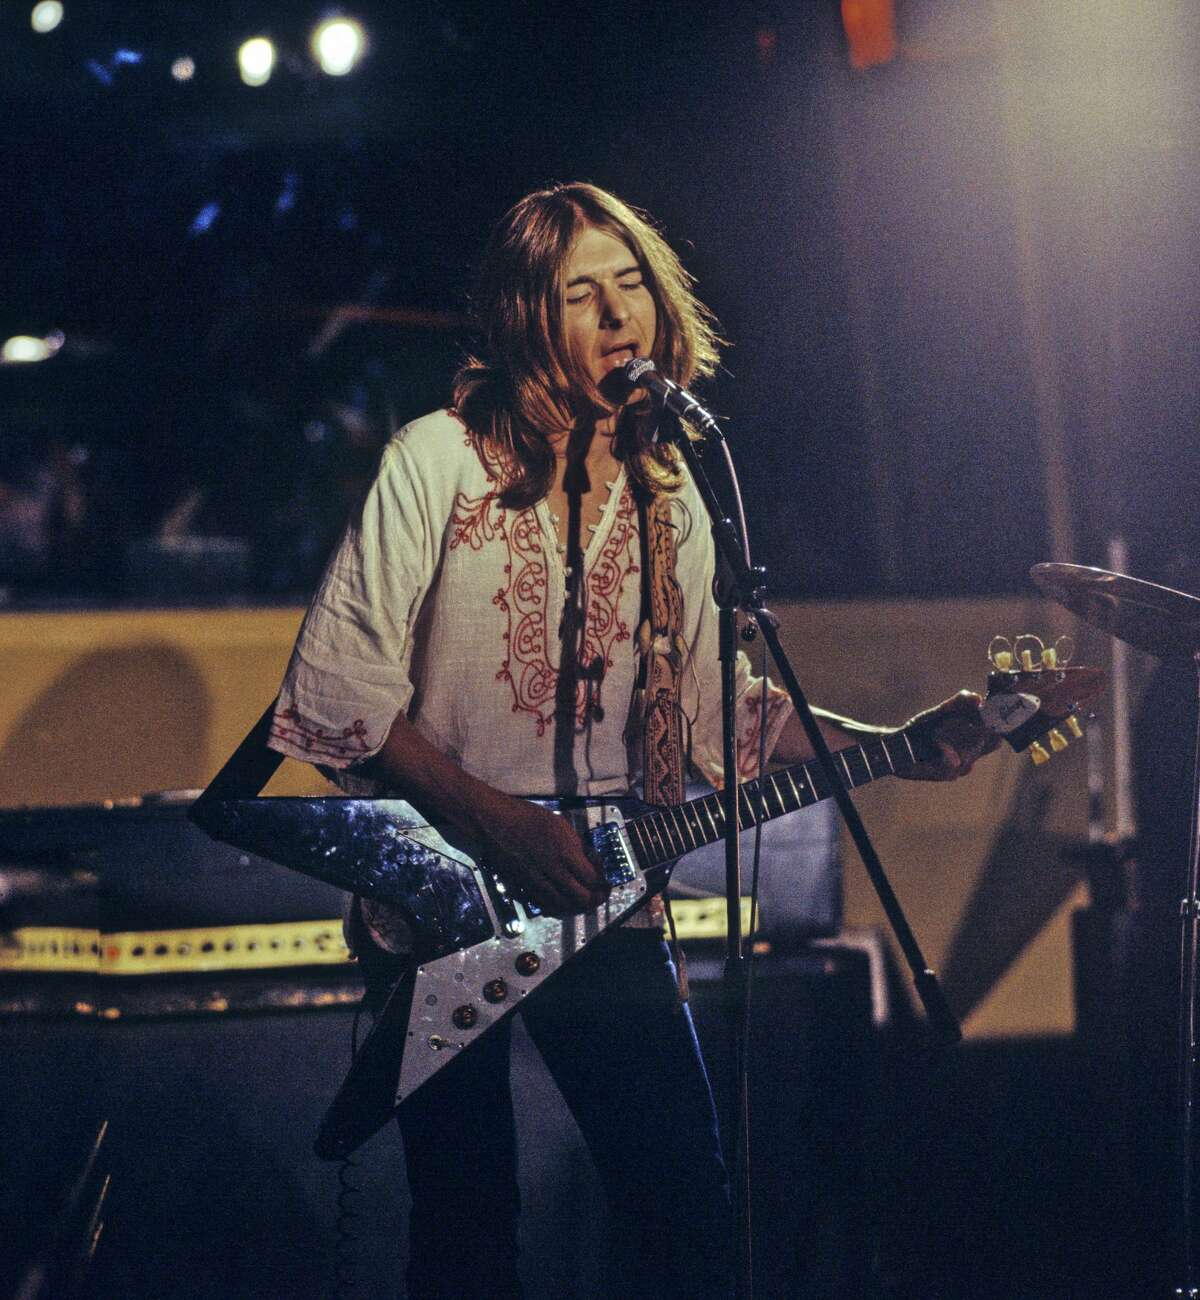 Mick Ralphs of Mott The Hoople performs at Island Records' Basing Street Studios in London on Aug. 10, 1971. He plays a Gibson Flying V guitar.